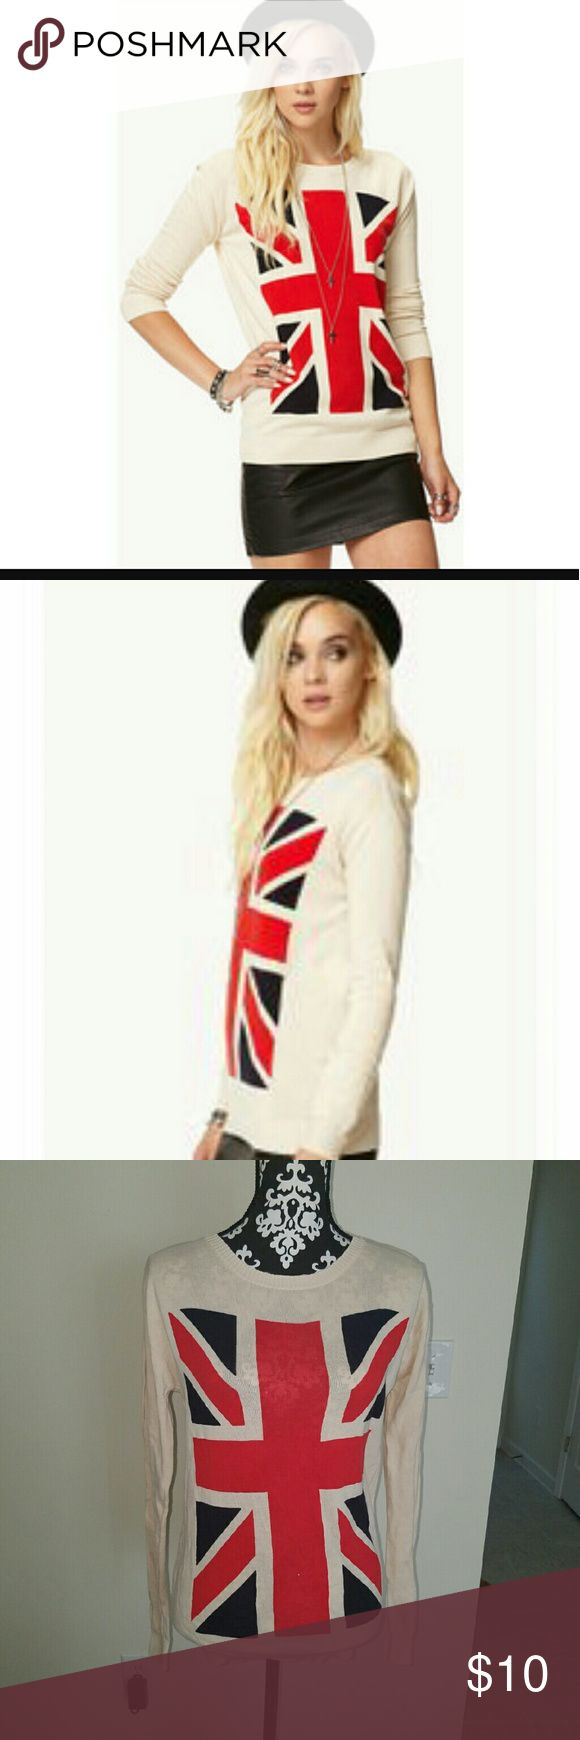 Britain Flag print Sweater Cream colored sweater with britain flag on front. Very comfy Forever 21 Sweaters Crew & Scoop Necks